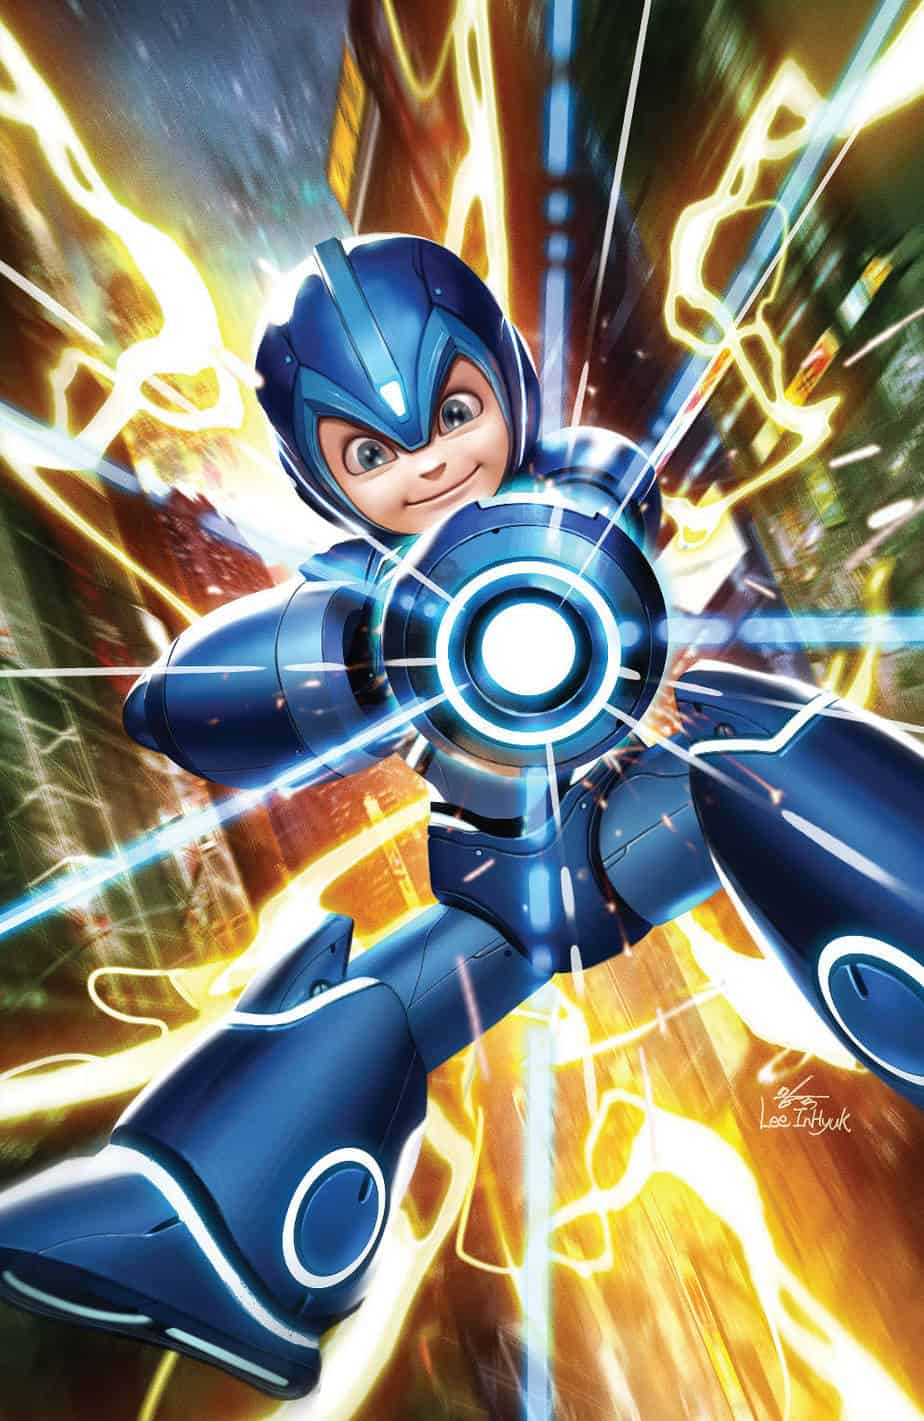 MEGA MAN: FULLY CHARGED #1 - Variant Cover